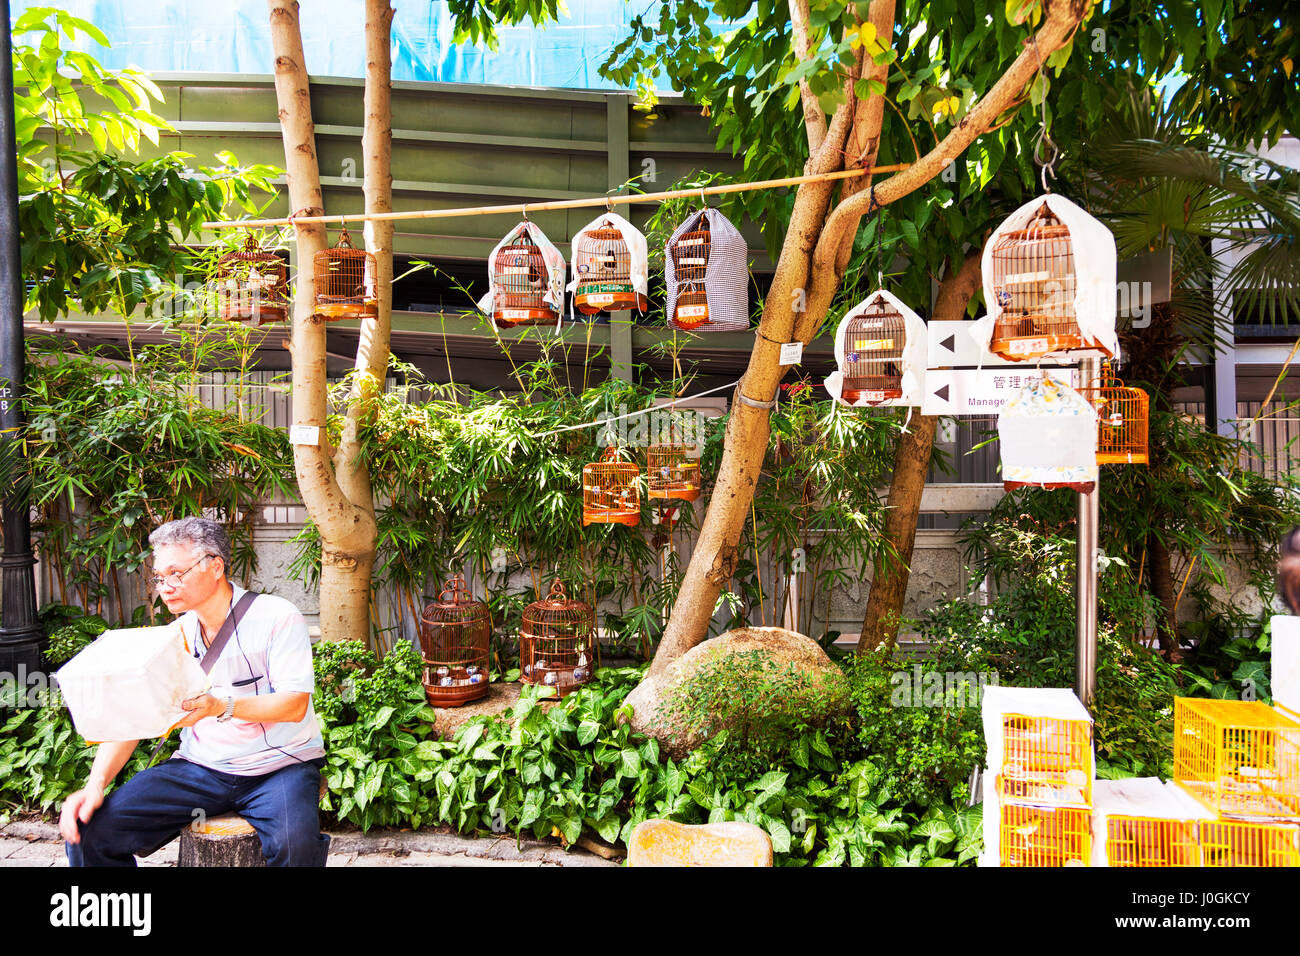 Kowloon, Hong Kong bird garden on Yuen Po Street, see the birds caged ready for sale or show birds in cages for - Stock Image